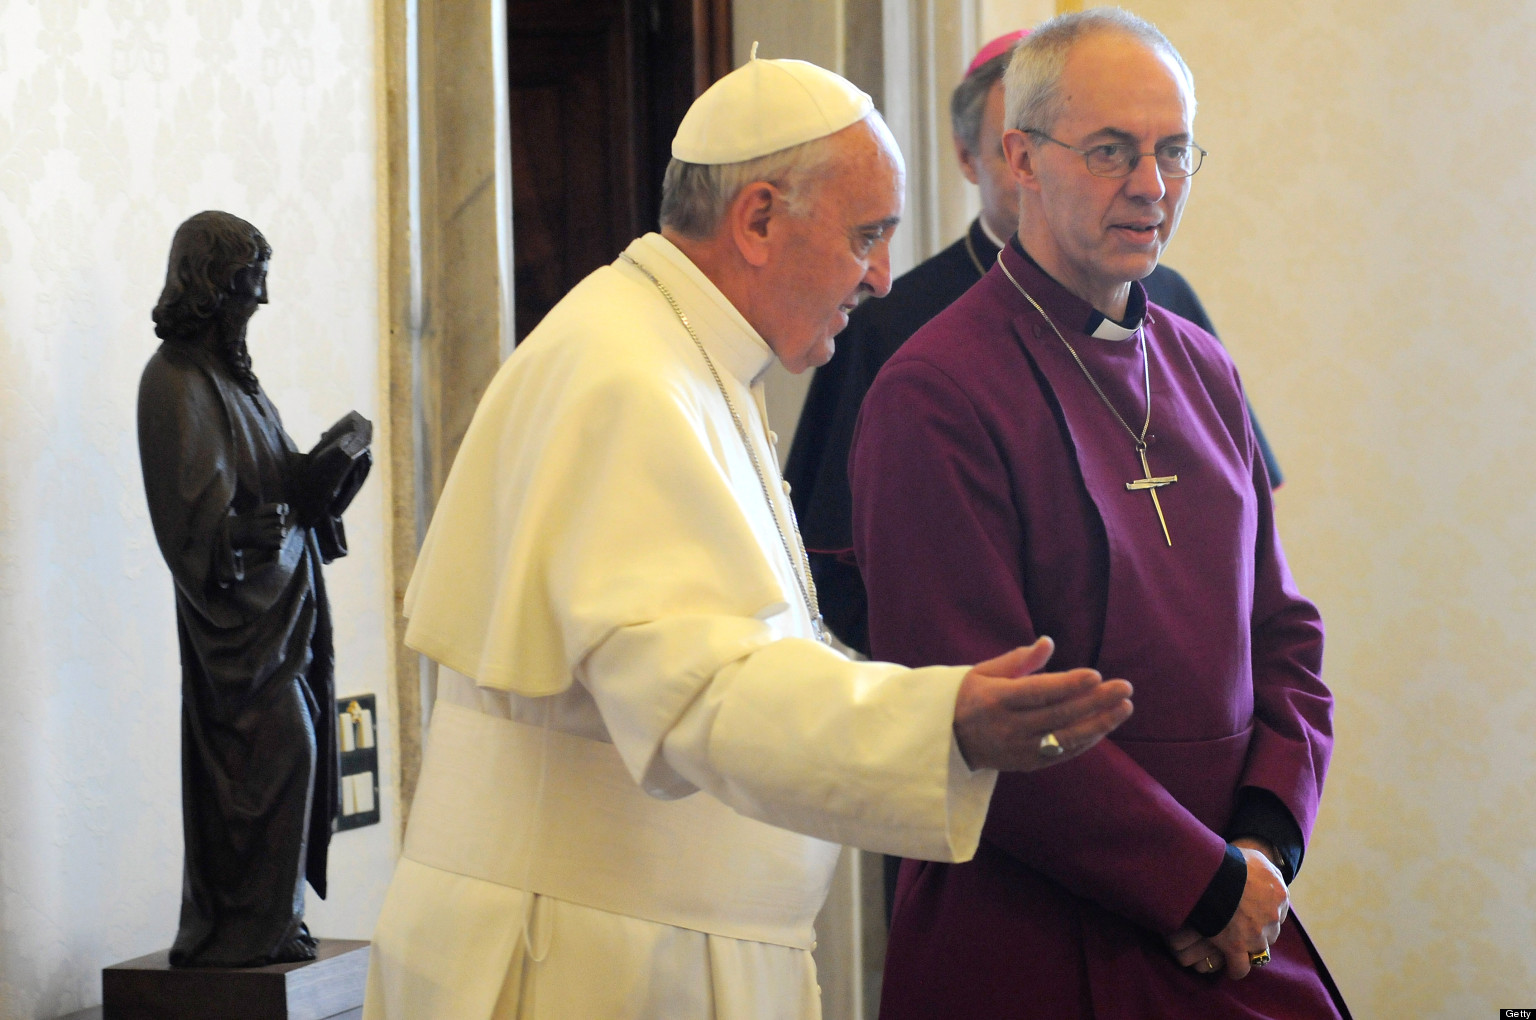 pope and archbishop of canterbury meet